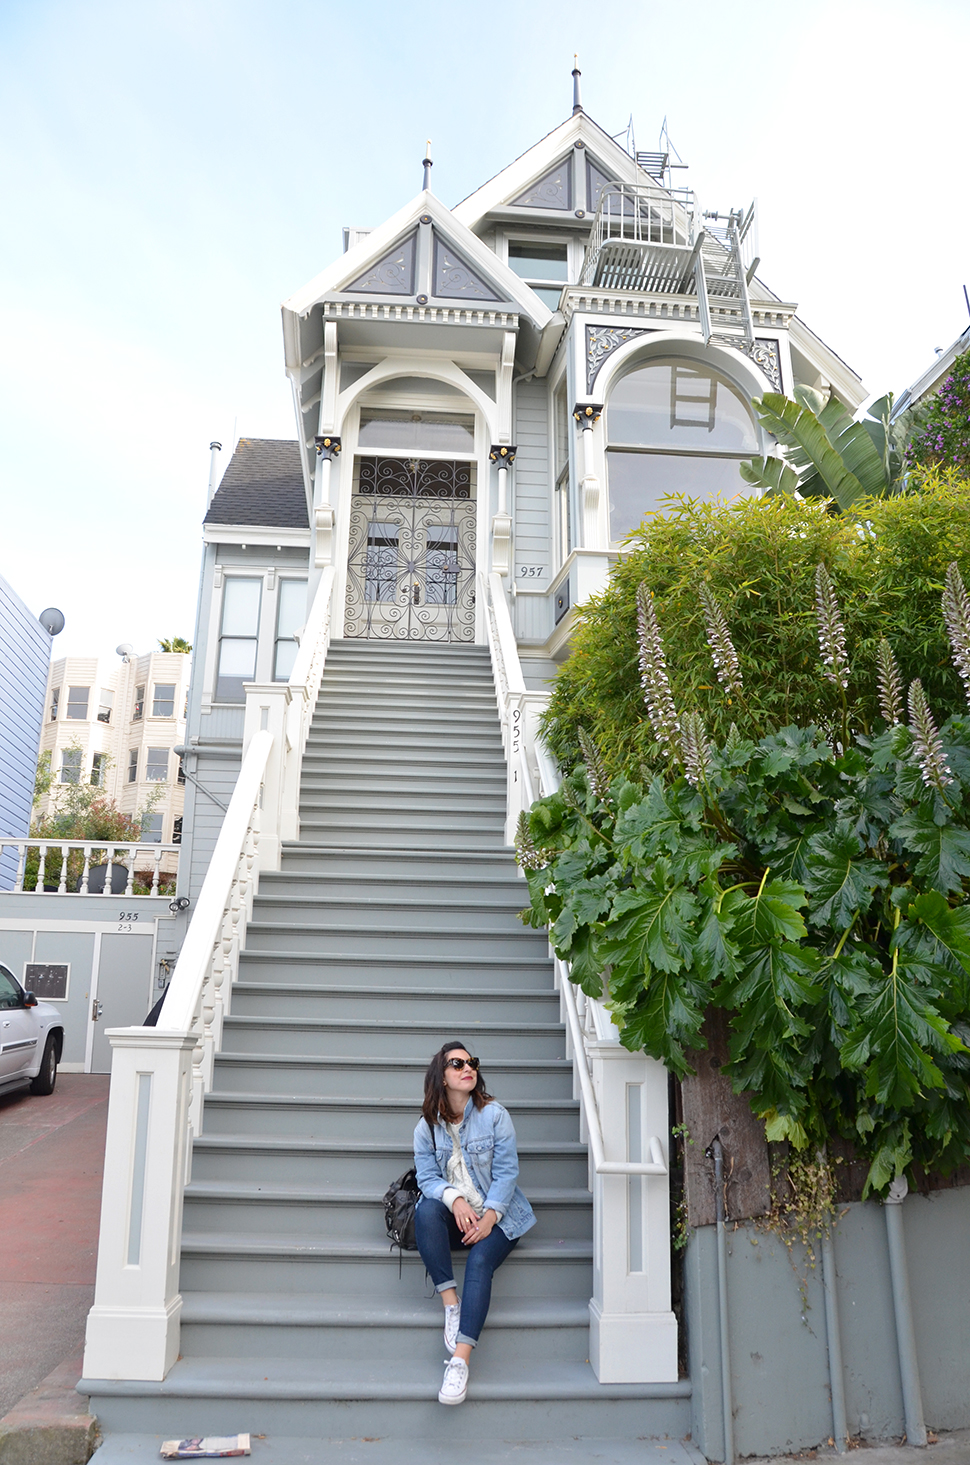 Helloitsvalentine_USA_California_SanFrancisco_part1_43